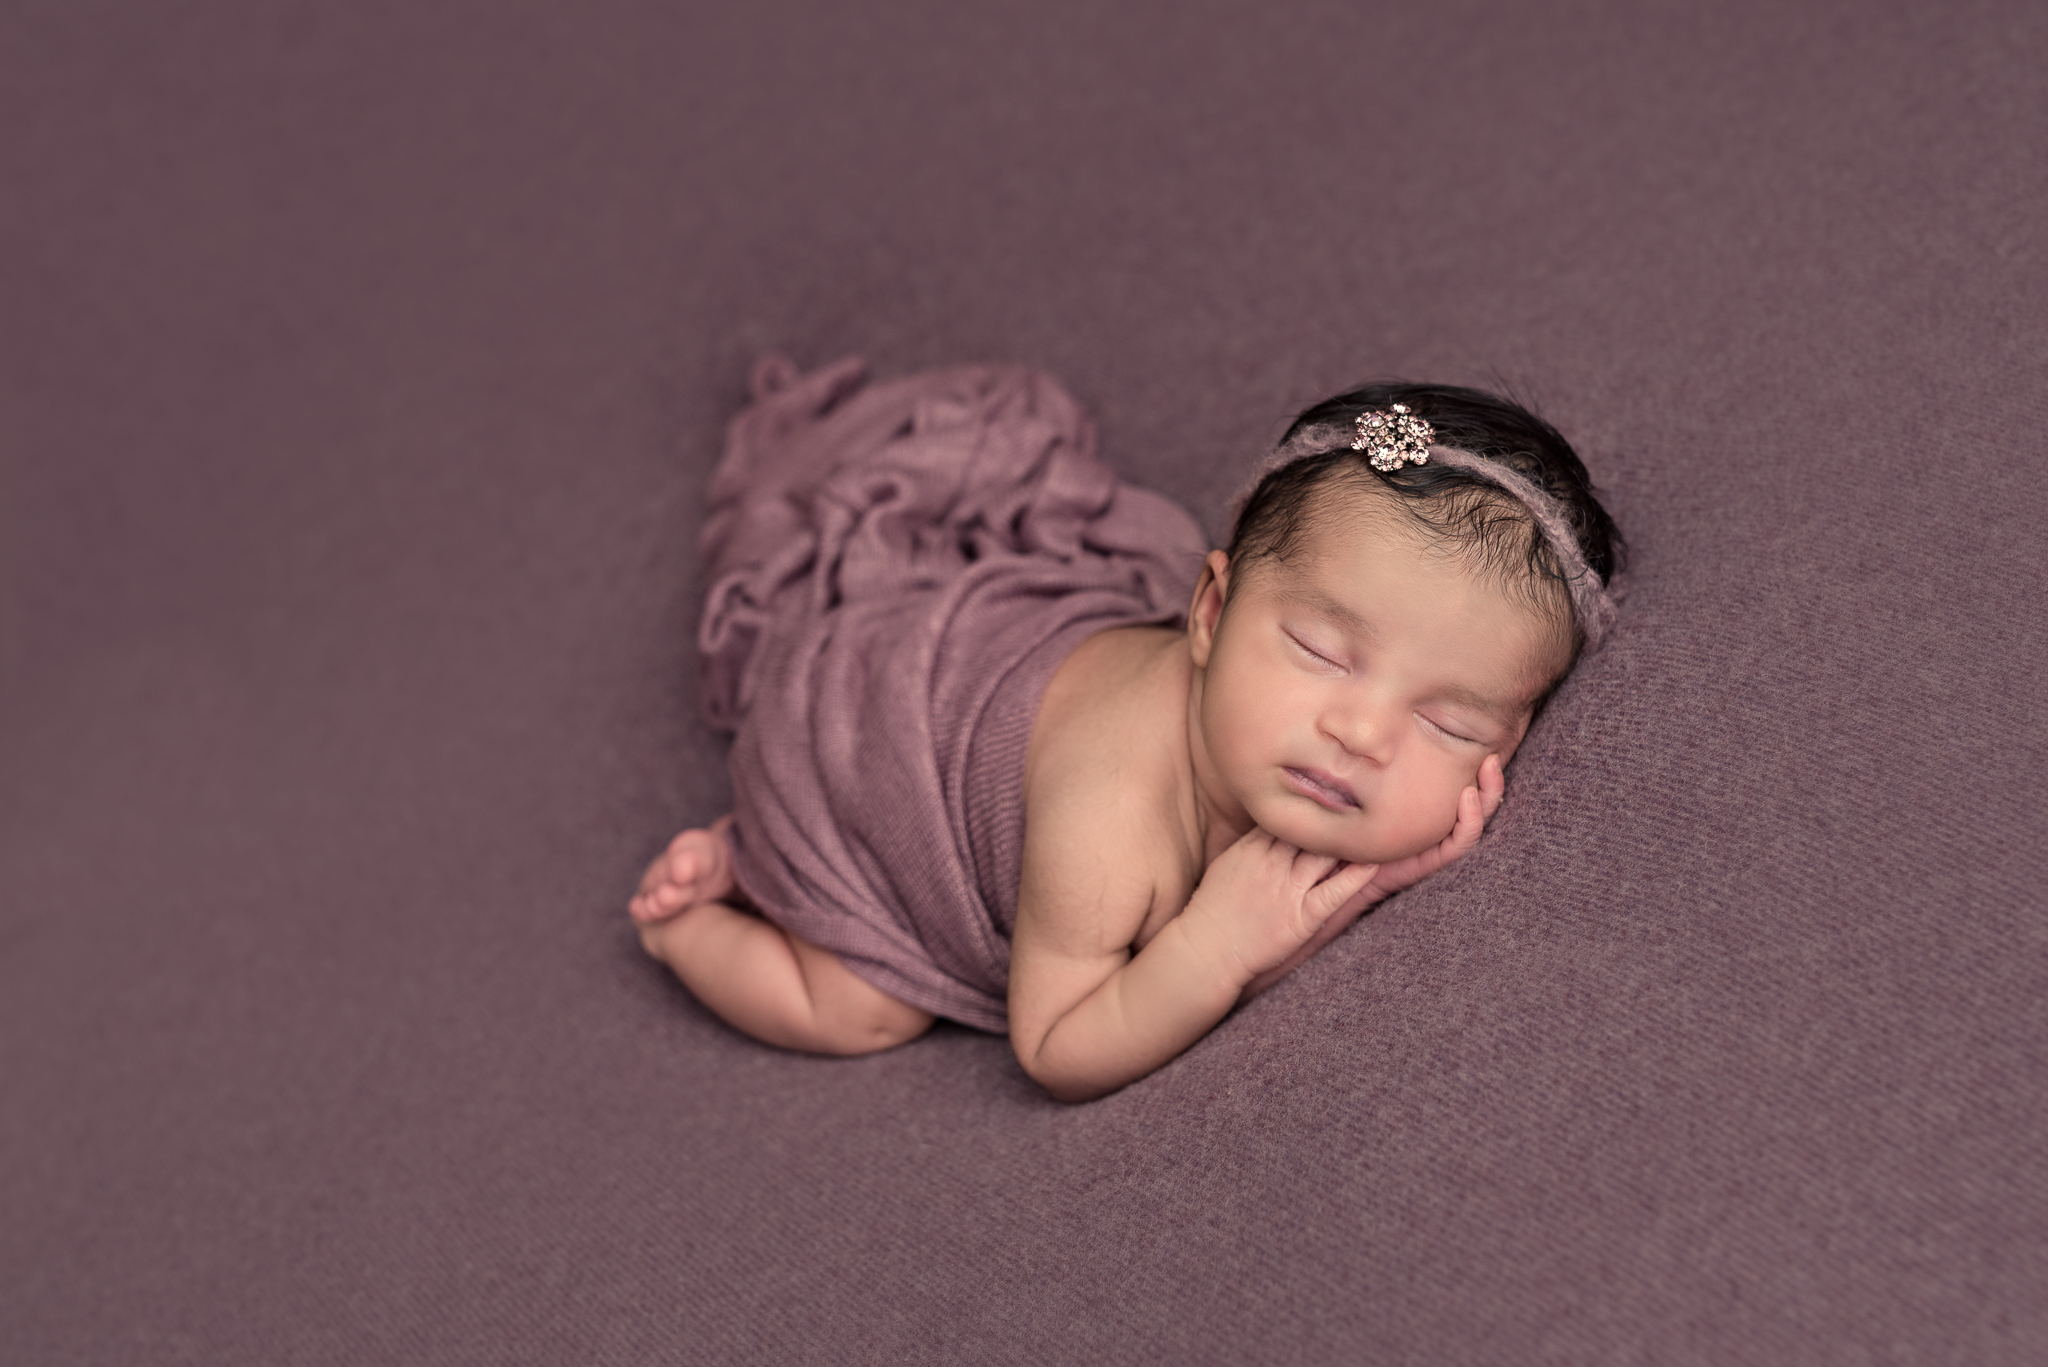 pretty little baby girl newborn photography session at a specialist studio in hamoshire